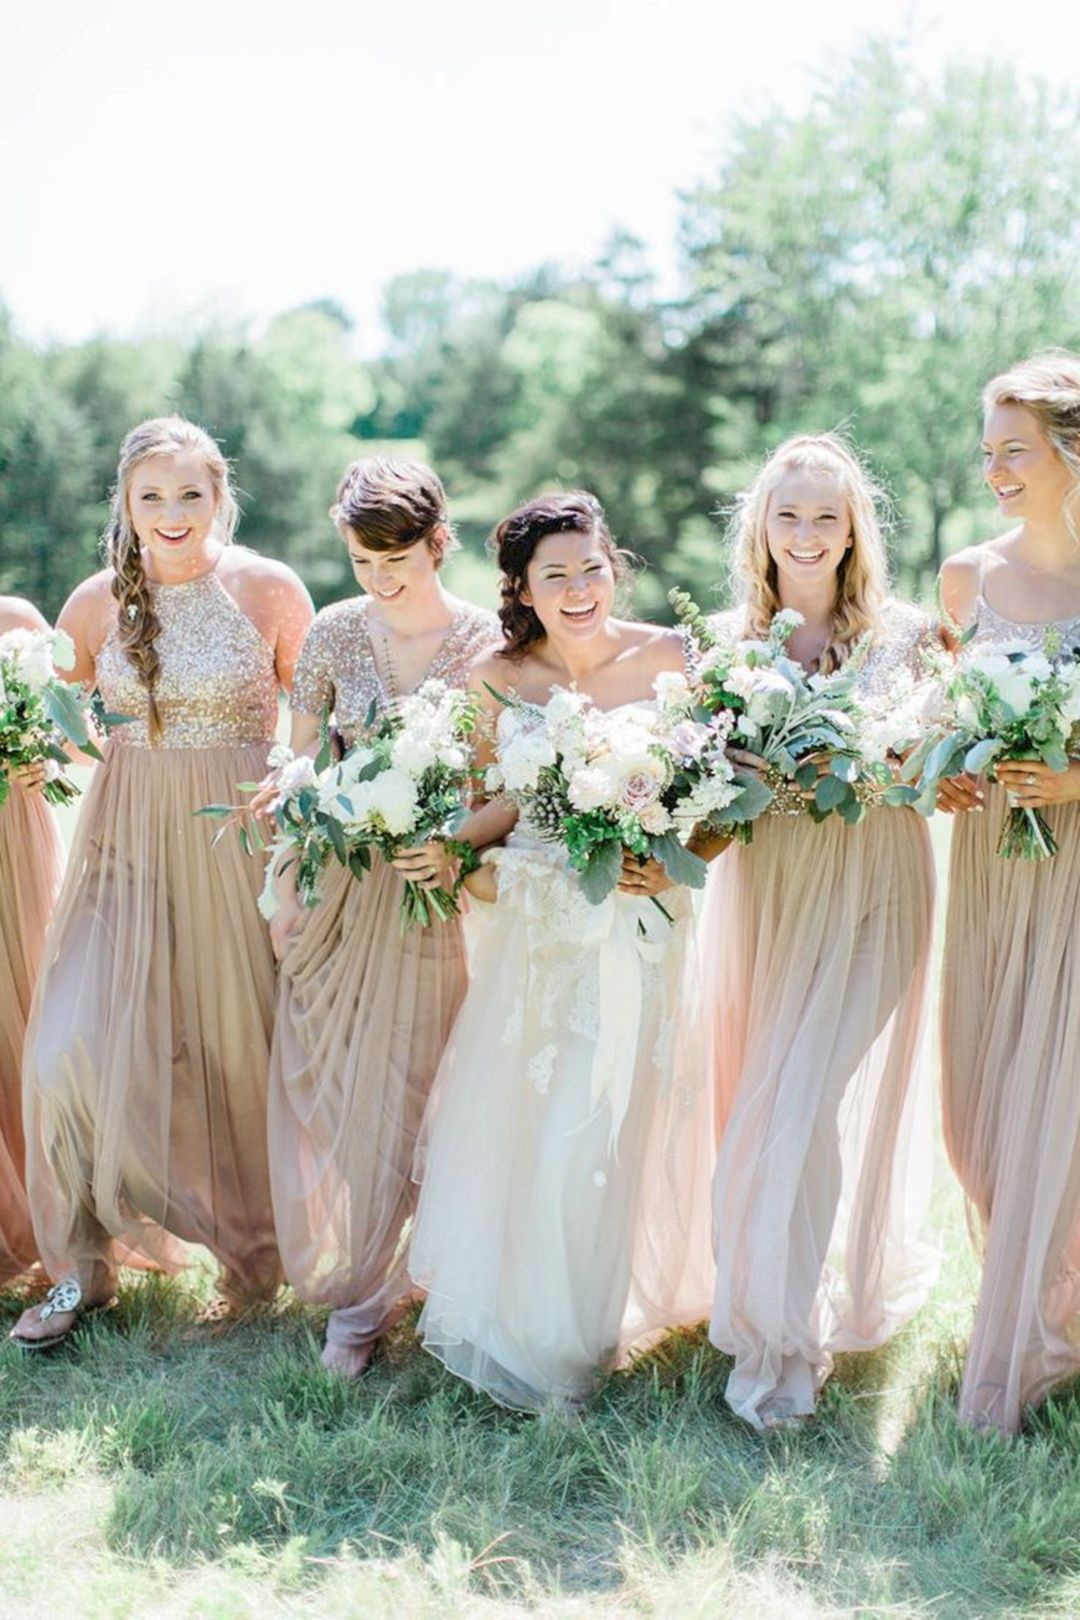 25 beautiful bridesmaid photography ideas that will